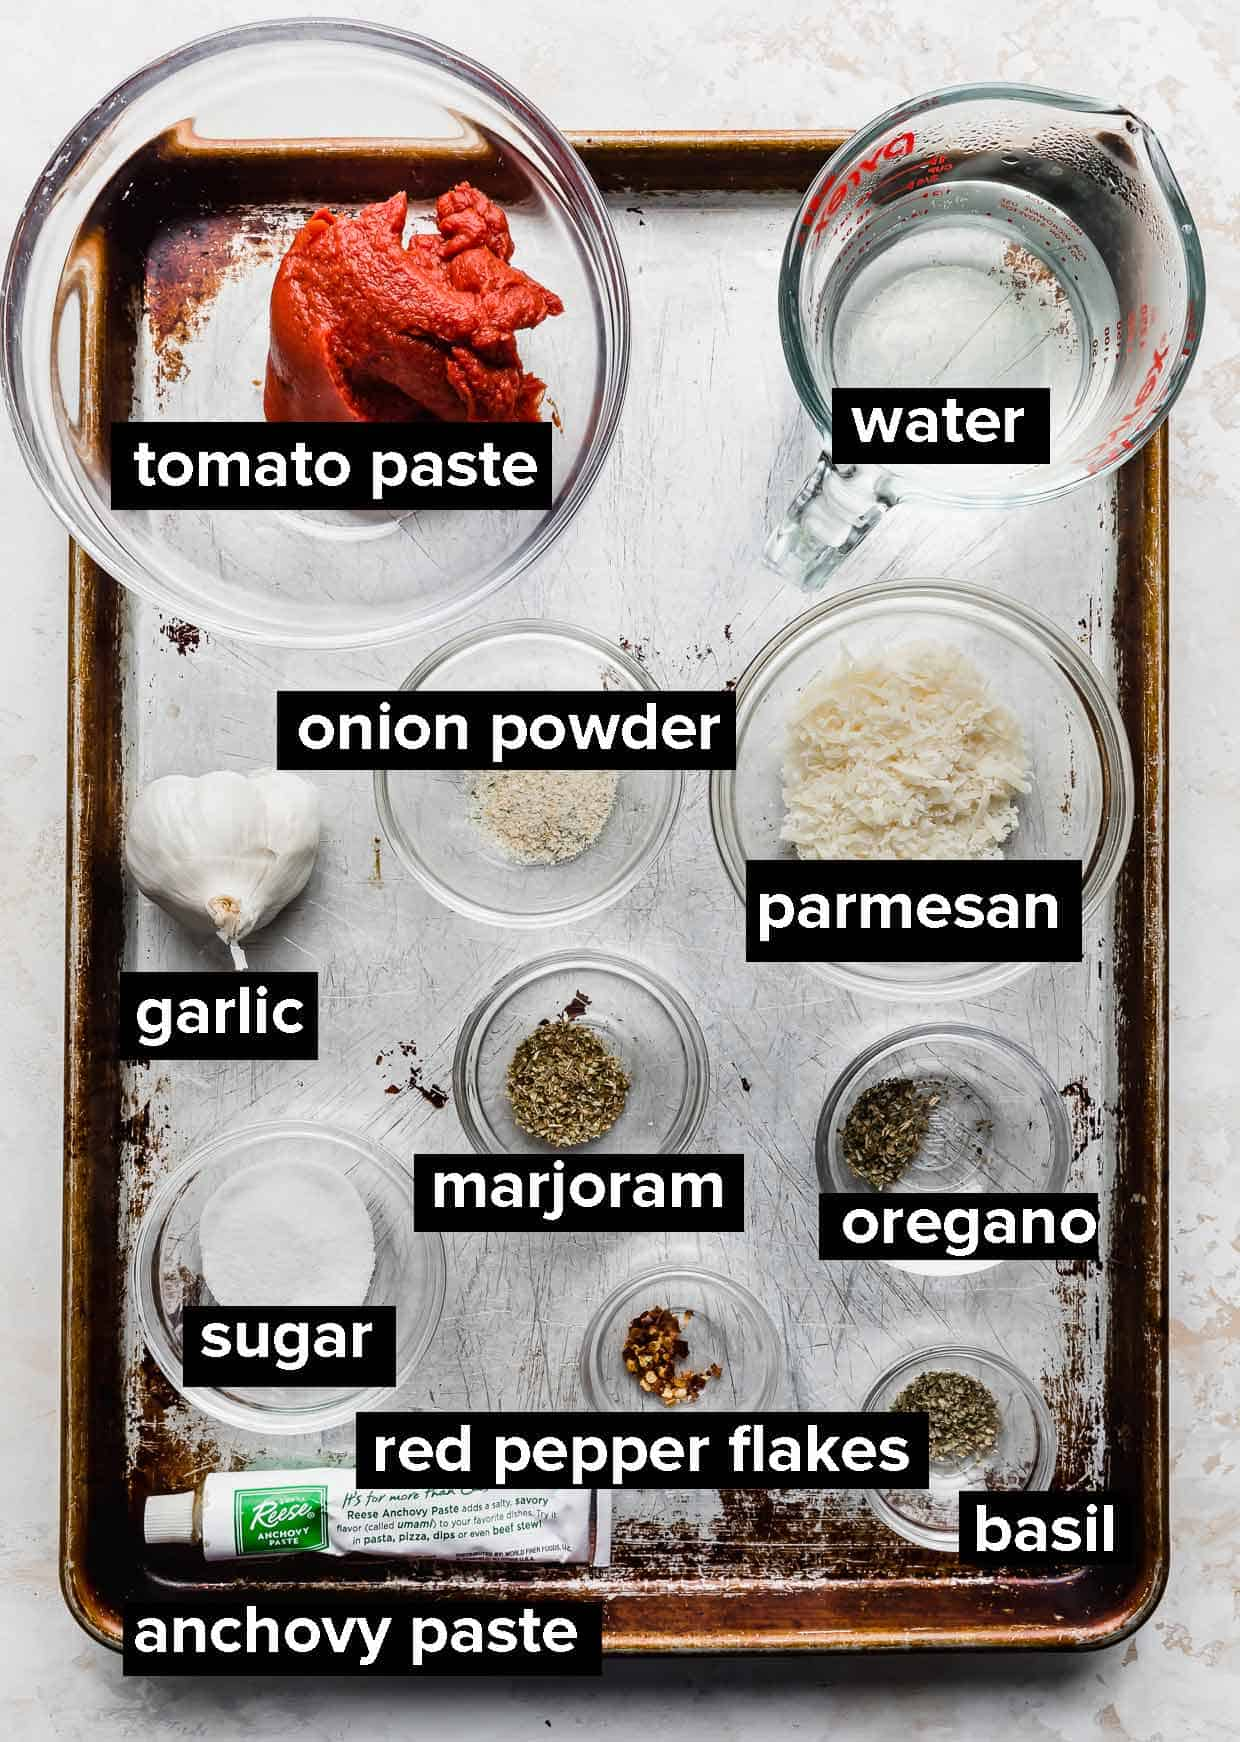 Ingredients used to make pizza sauce from tomato paste.